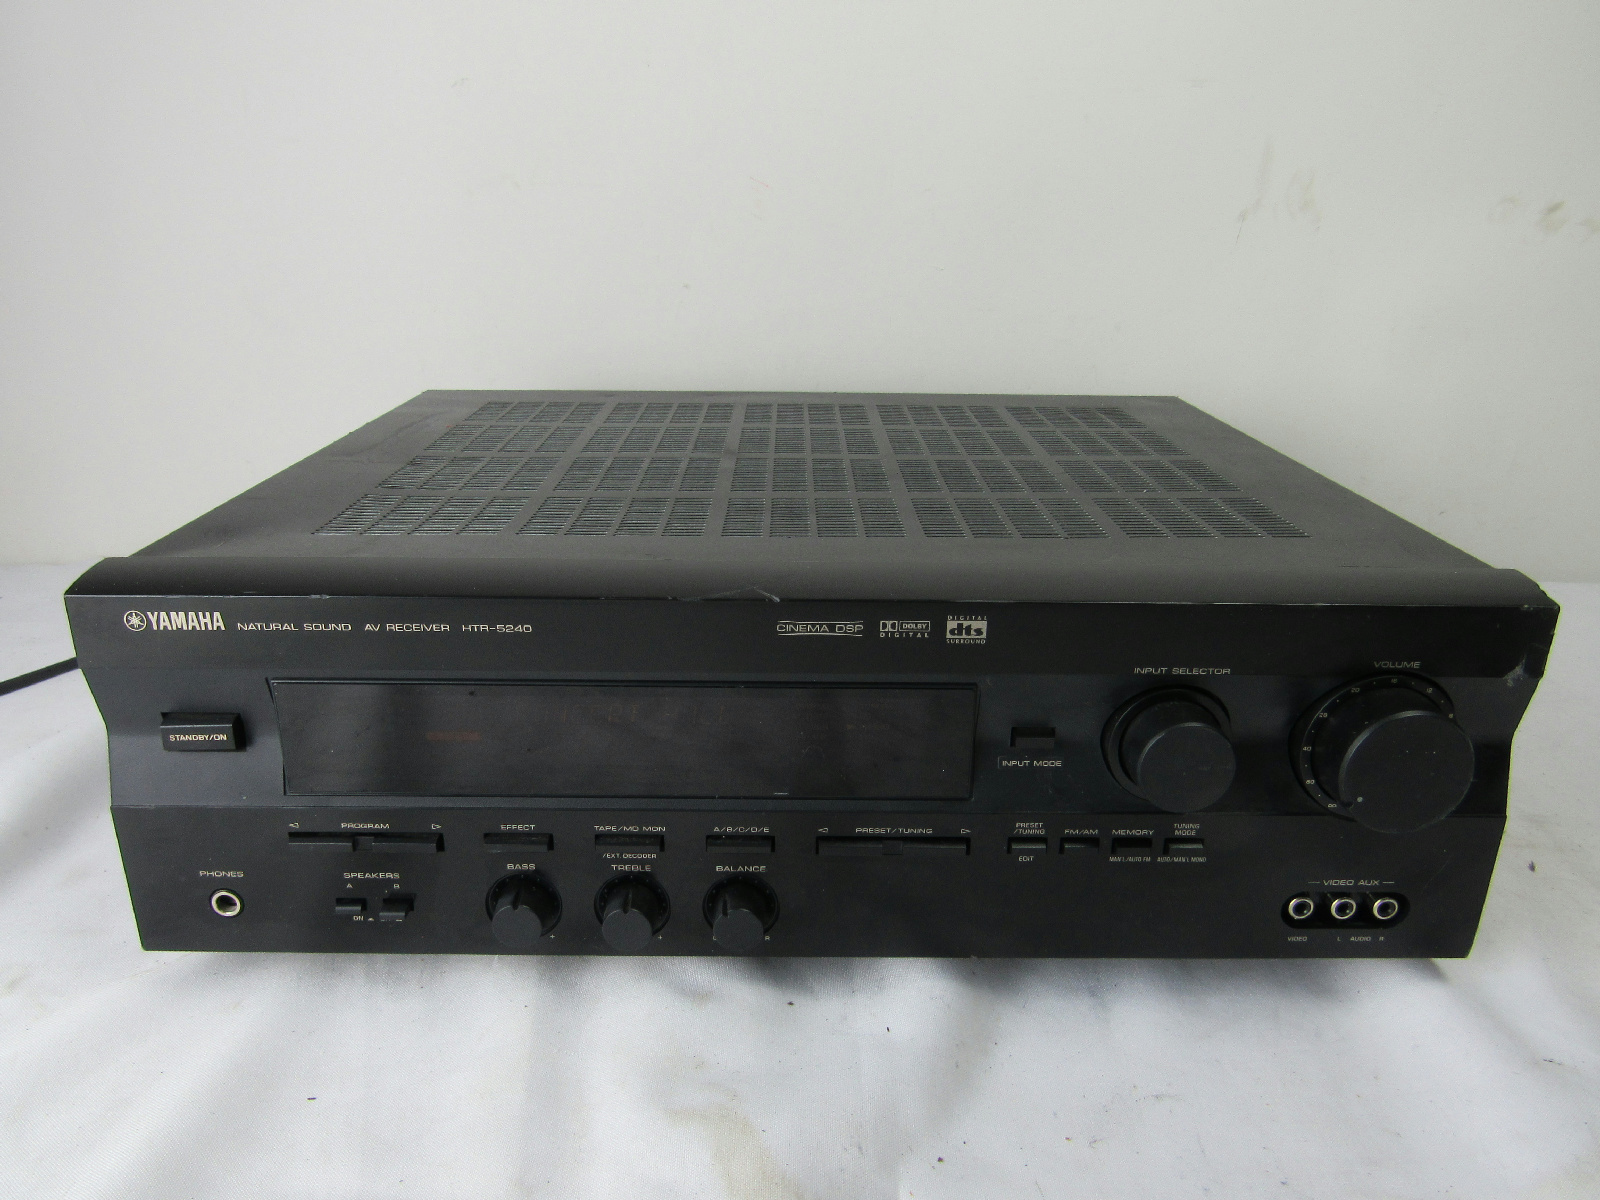 Yamaha home theatre receiver model htr 5240 ebay for Yamaha home theater amplifier